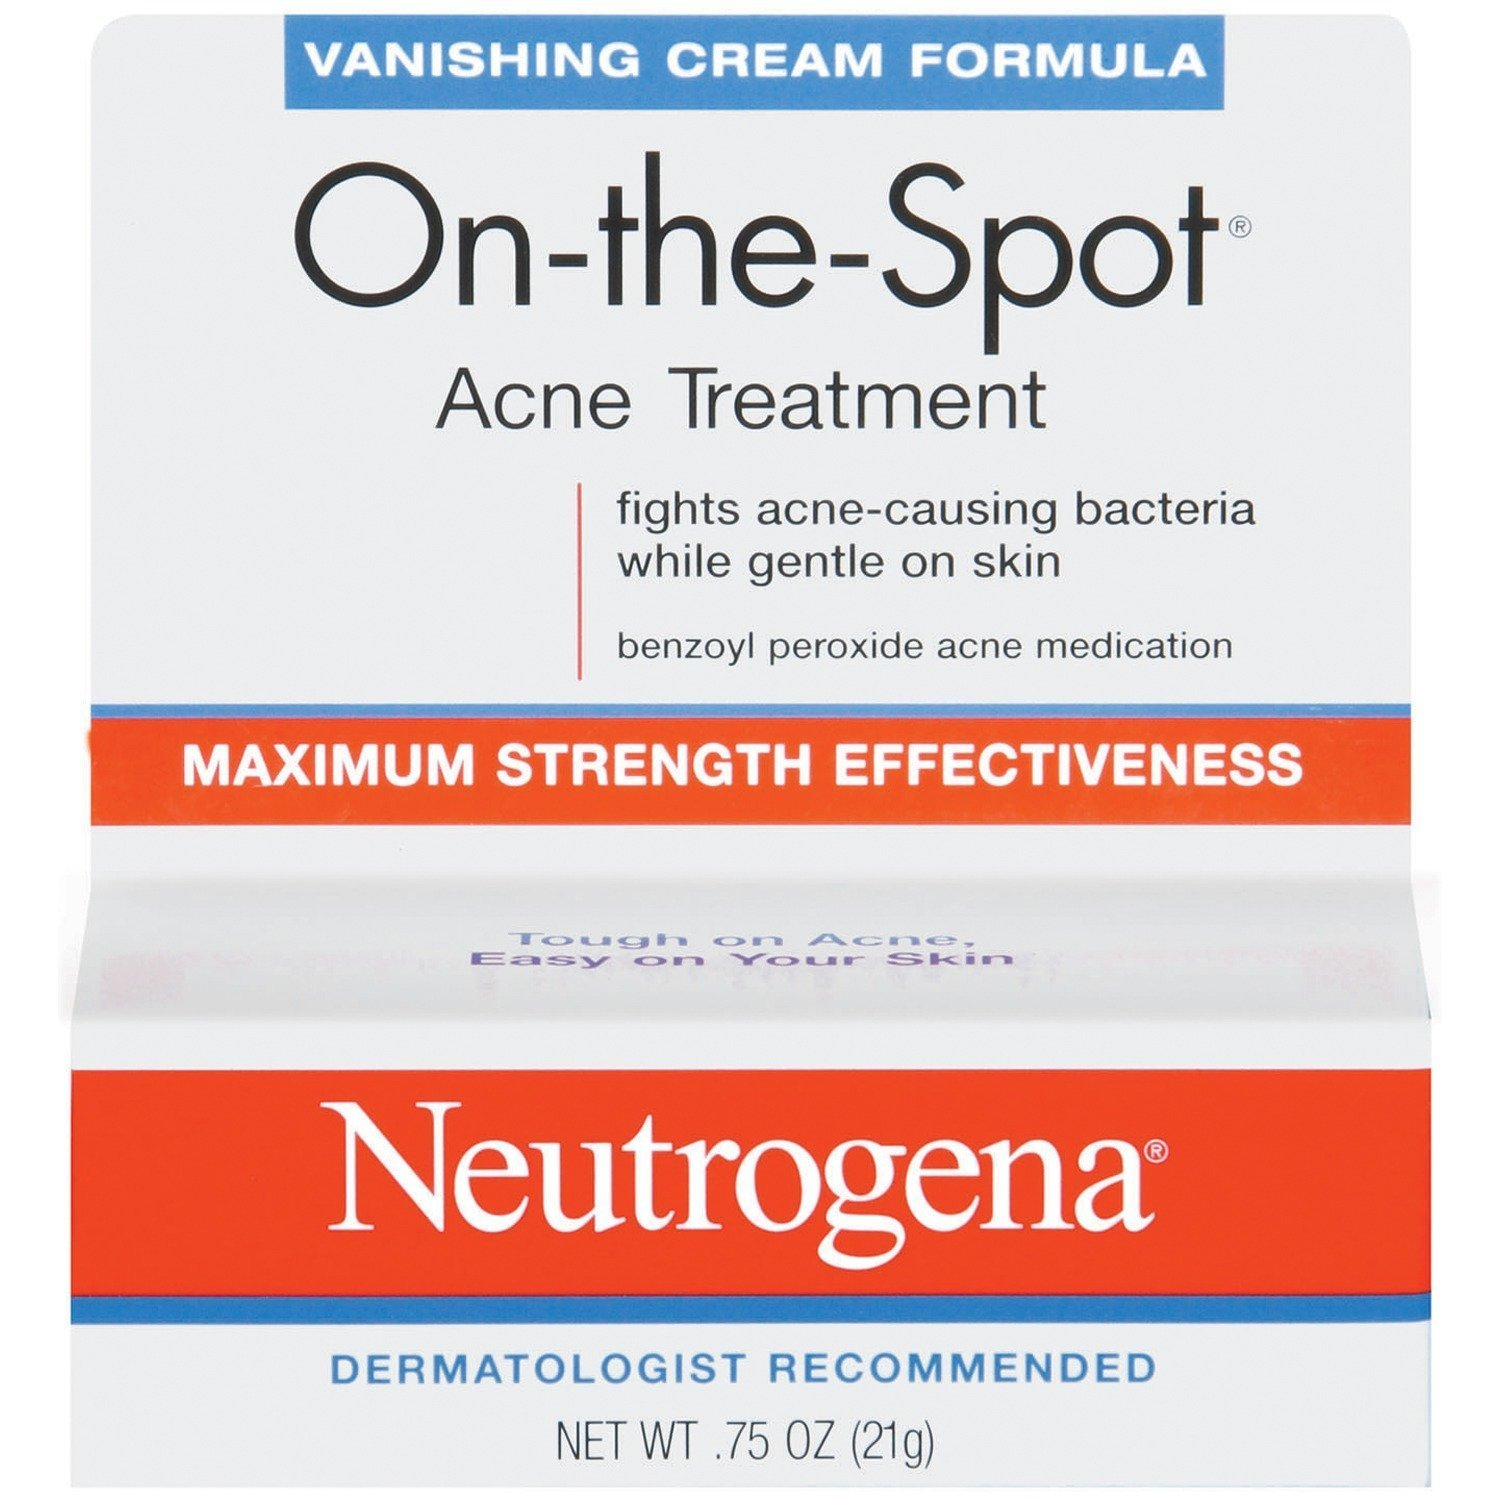 Neutrogena On-The-Spot Acne Spot Treatment with 2.5% Benzoyl Peroxide Acne Treatment Medicine to Treat Face Acne, Gentle Benzoyl Peroxide Pimple Gel for Acne Prone Skin.75 oz (Pack of 2)